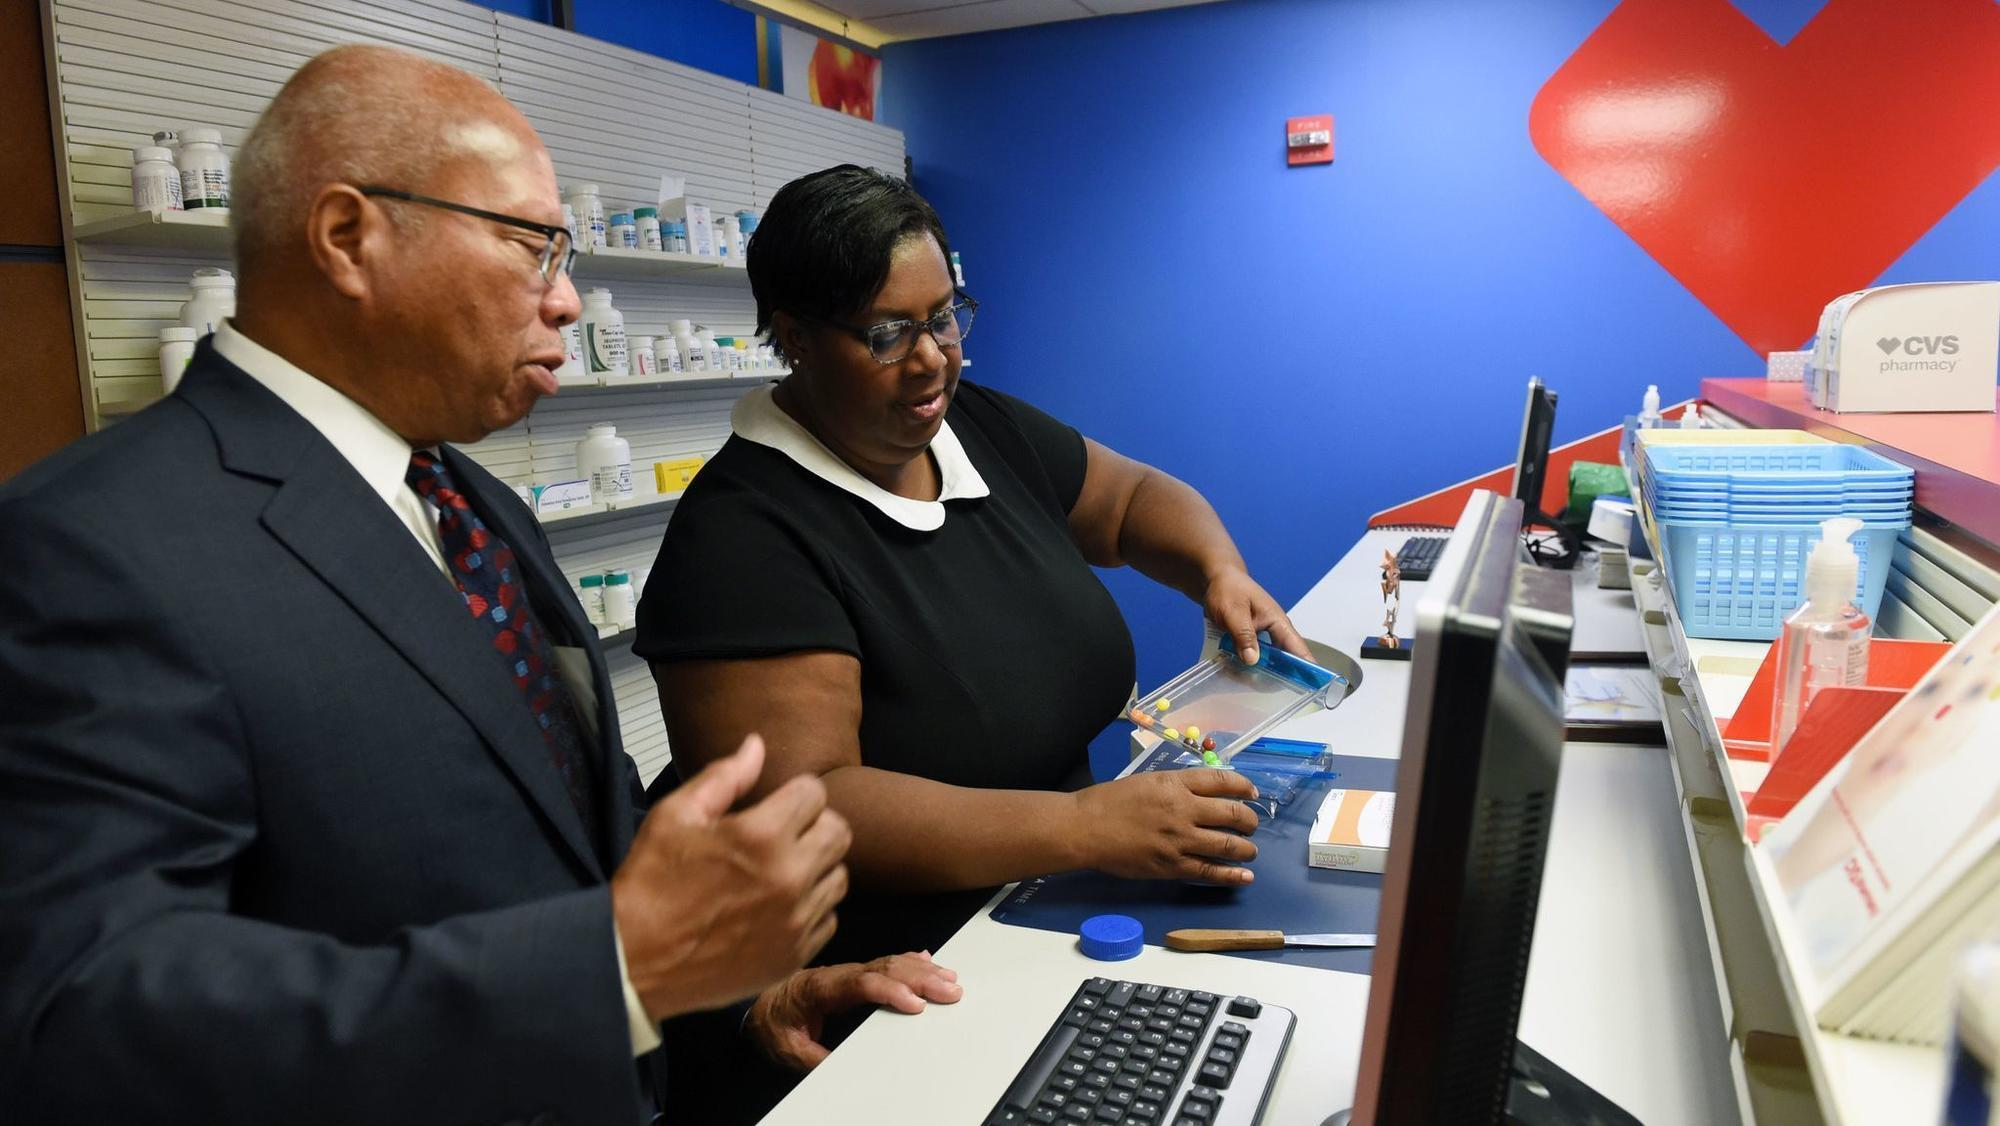 cvs health and goodwill offer workforce training at  u0026 39 mock u0026 39  pharmacy in baltimore